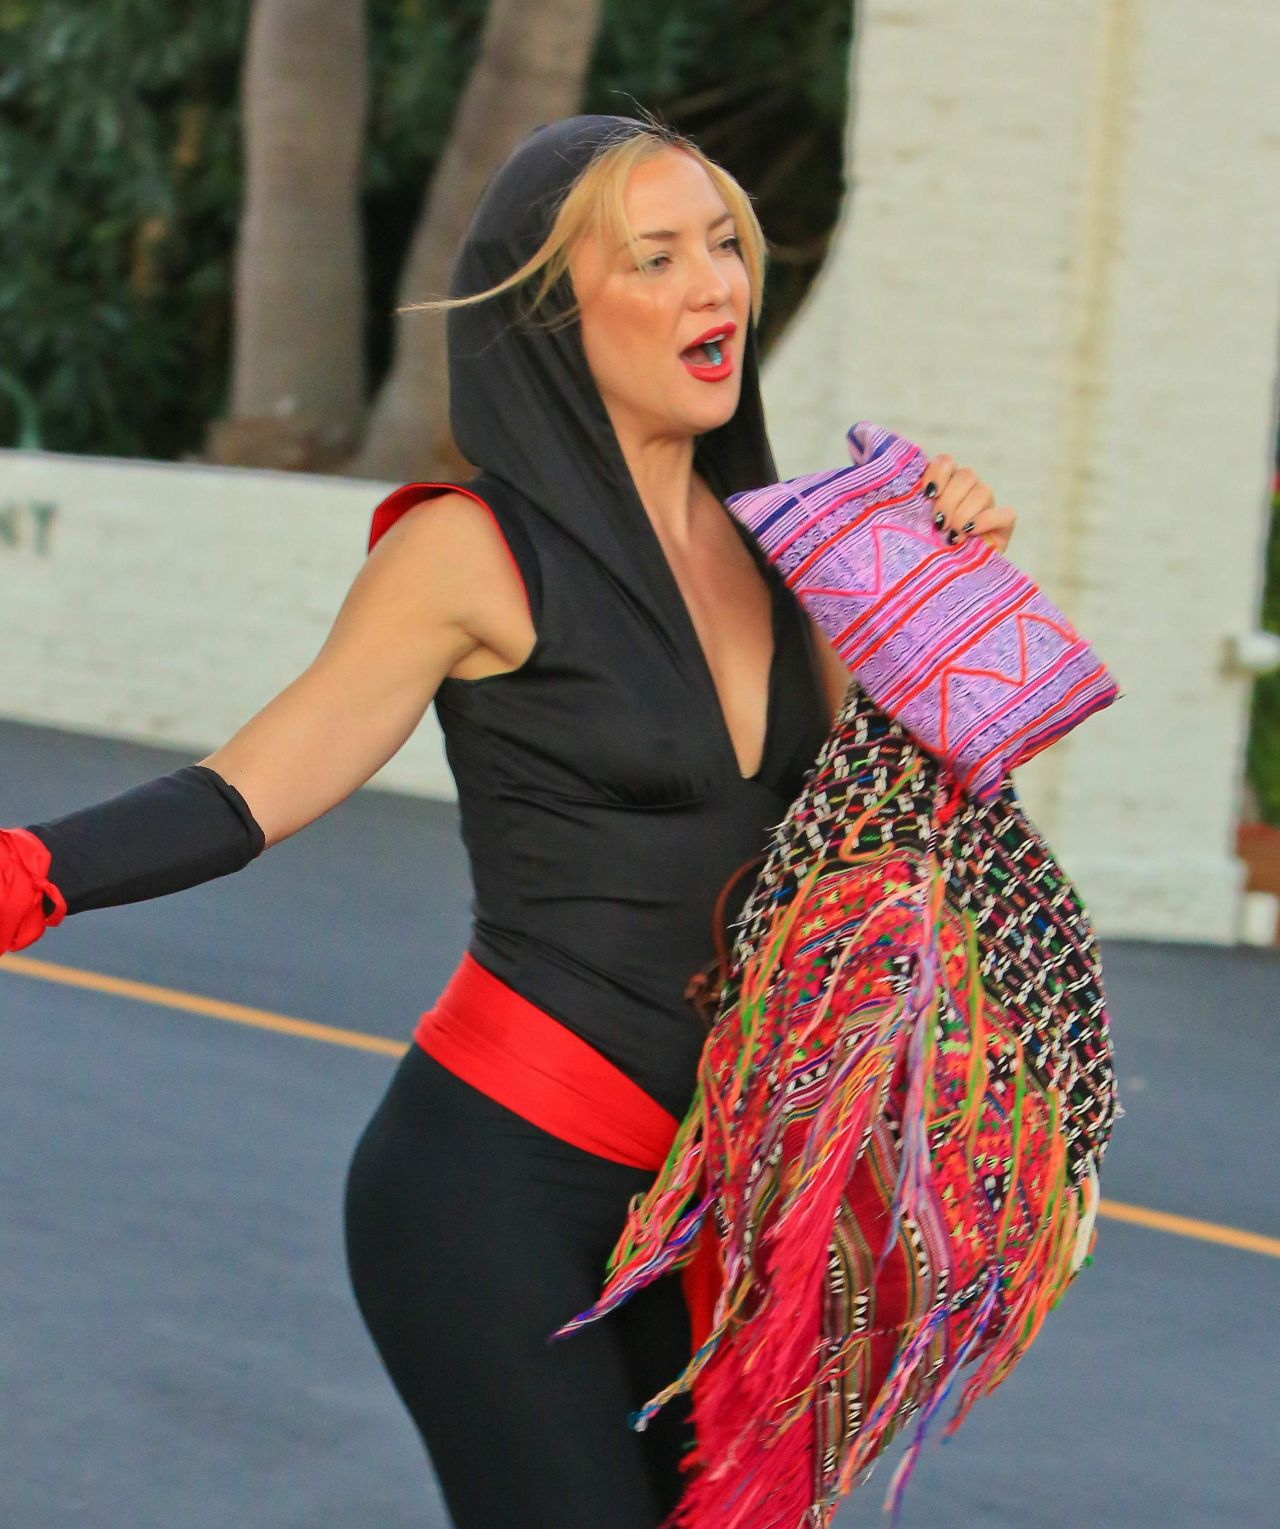 kate hudson ninja outfit for a halloween party in malibu october 2015 - Halloween On The Hudson